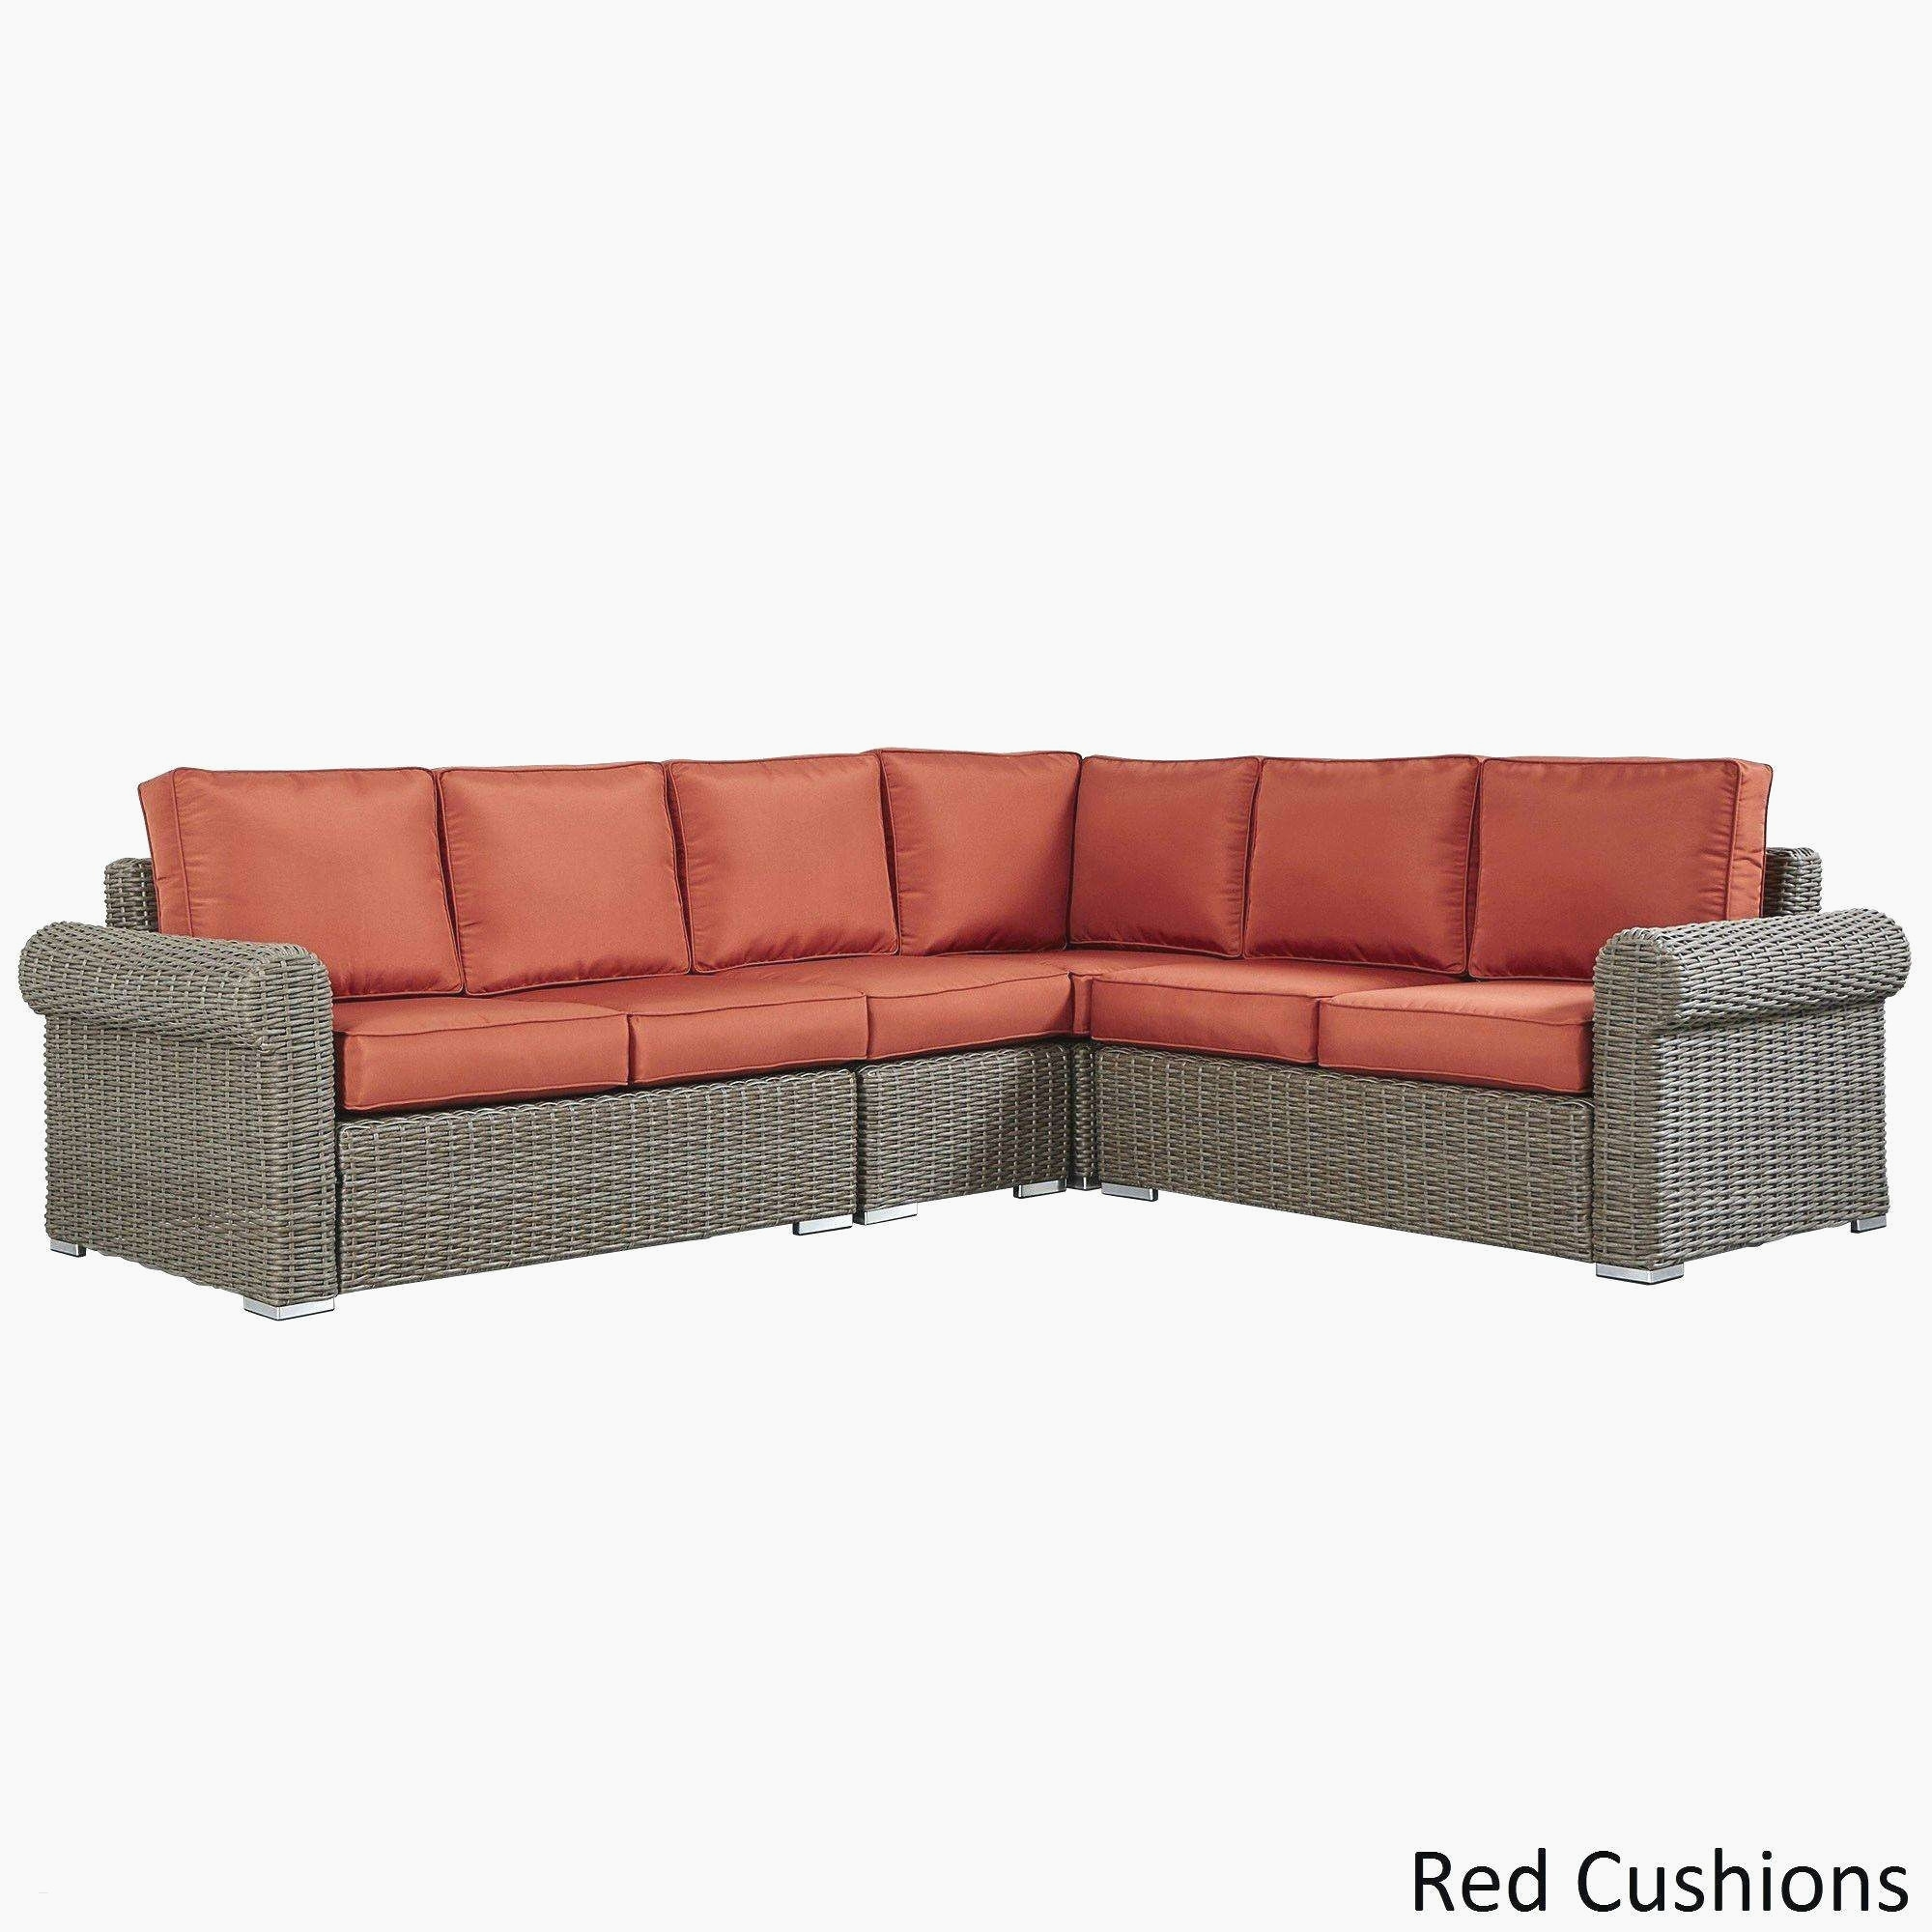 60 Awesome Sectional Sleeper Sofa With Chaise Collection 6Y7K – Home in Arrowmask 2 Piece Sectionals With Sleeper & Left Facing Chaise (Image 1 of 30)